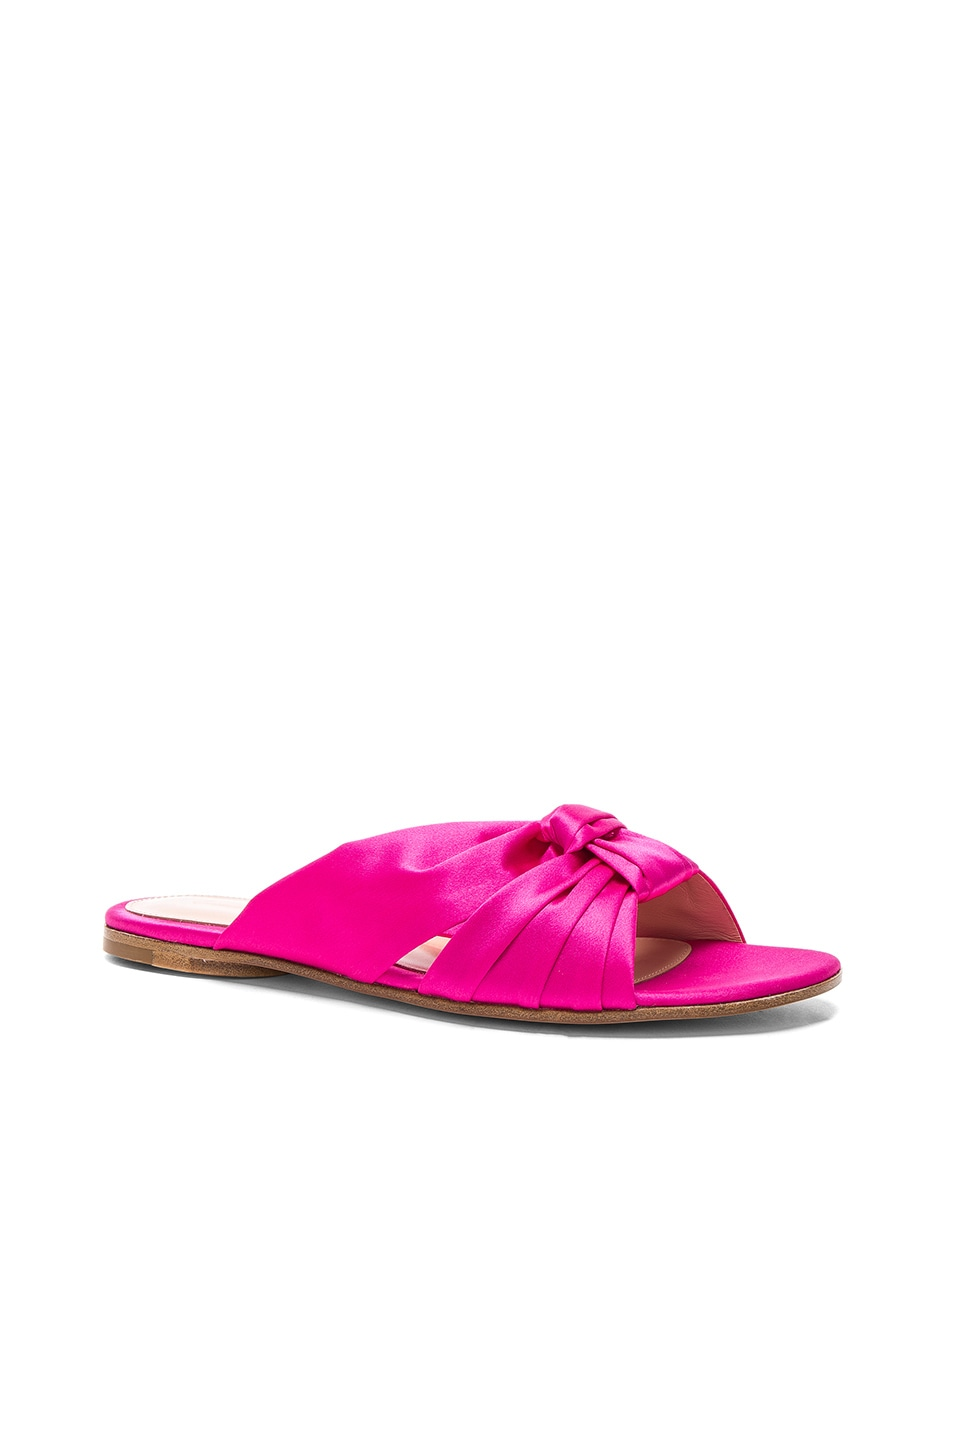 Image 2 of Gianvito Rossi Satin Blair Knot Sandals in Fuchsia